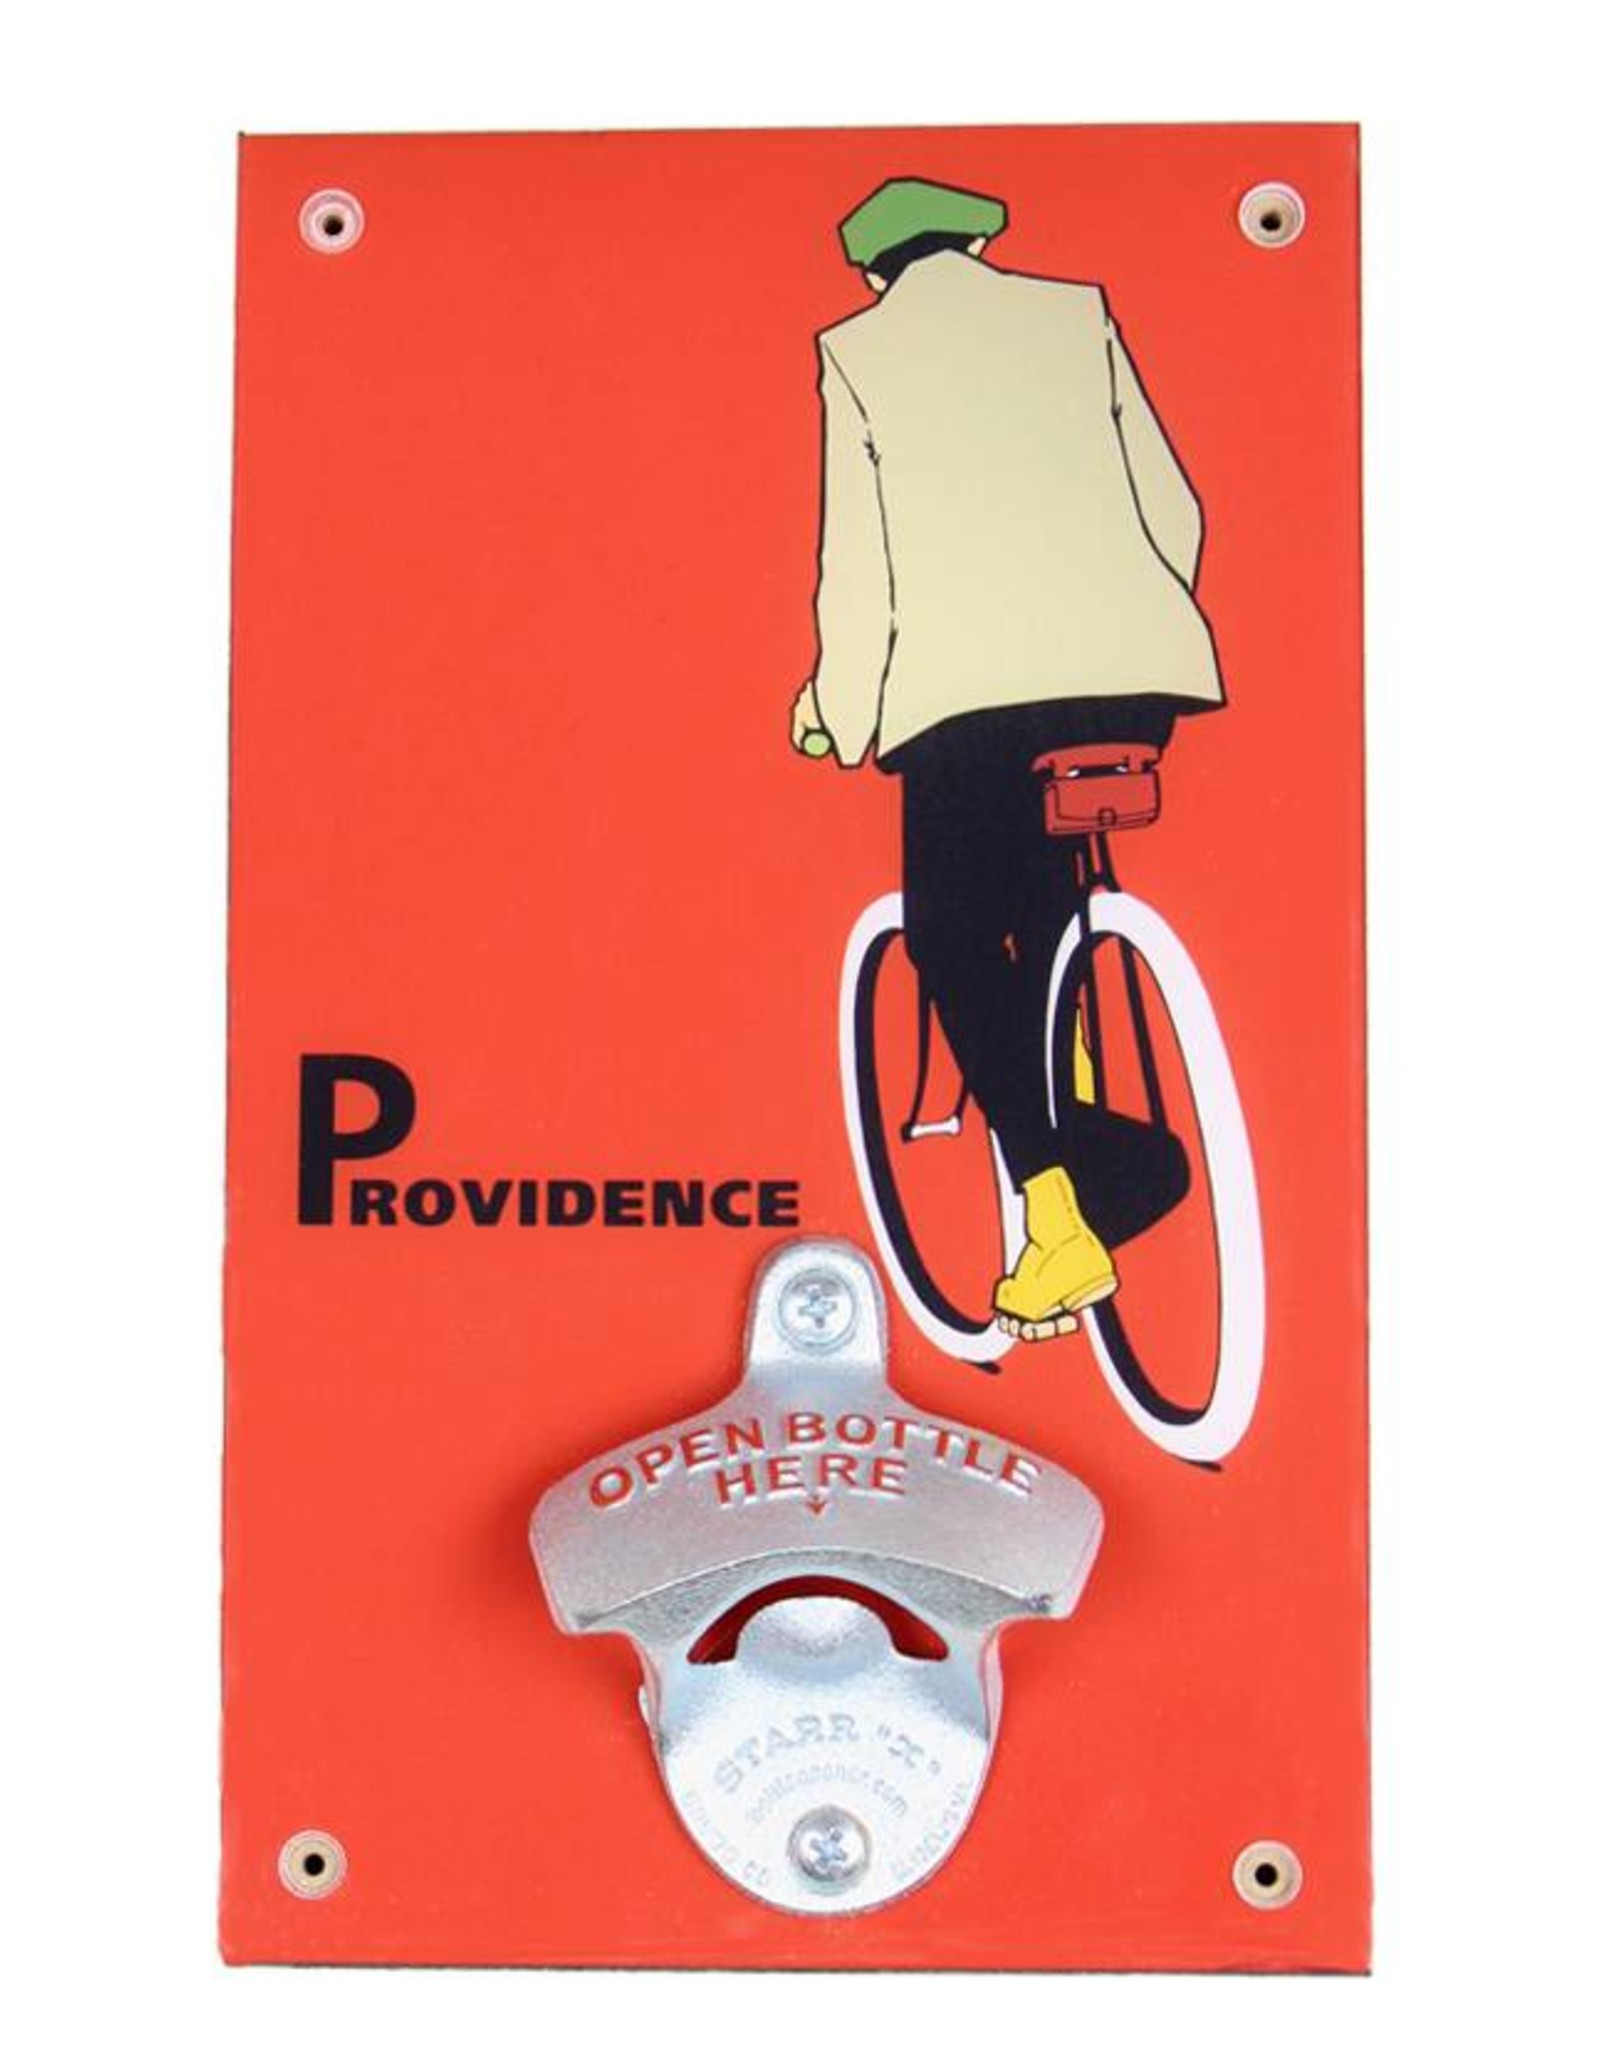 The Providence Cyclist Bottle Opener